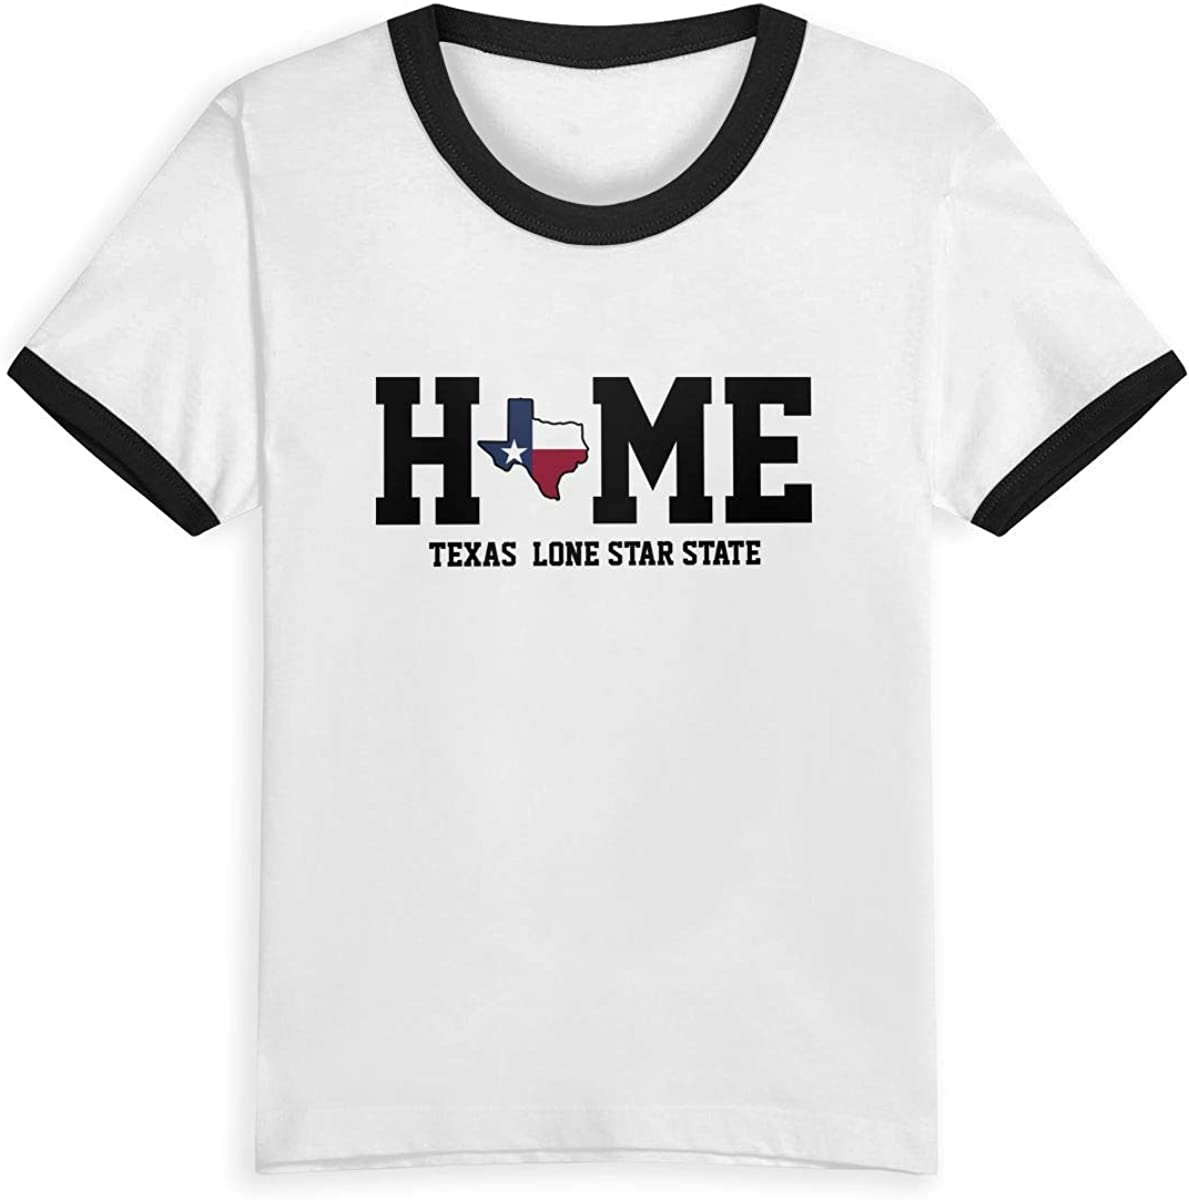 CY SHOP Texas My Home Lone Star State Childrens Boys Girls Contrast Short Sleeve T-Shirt